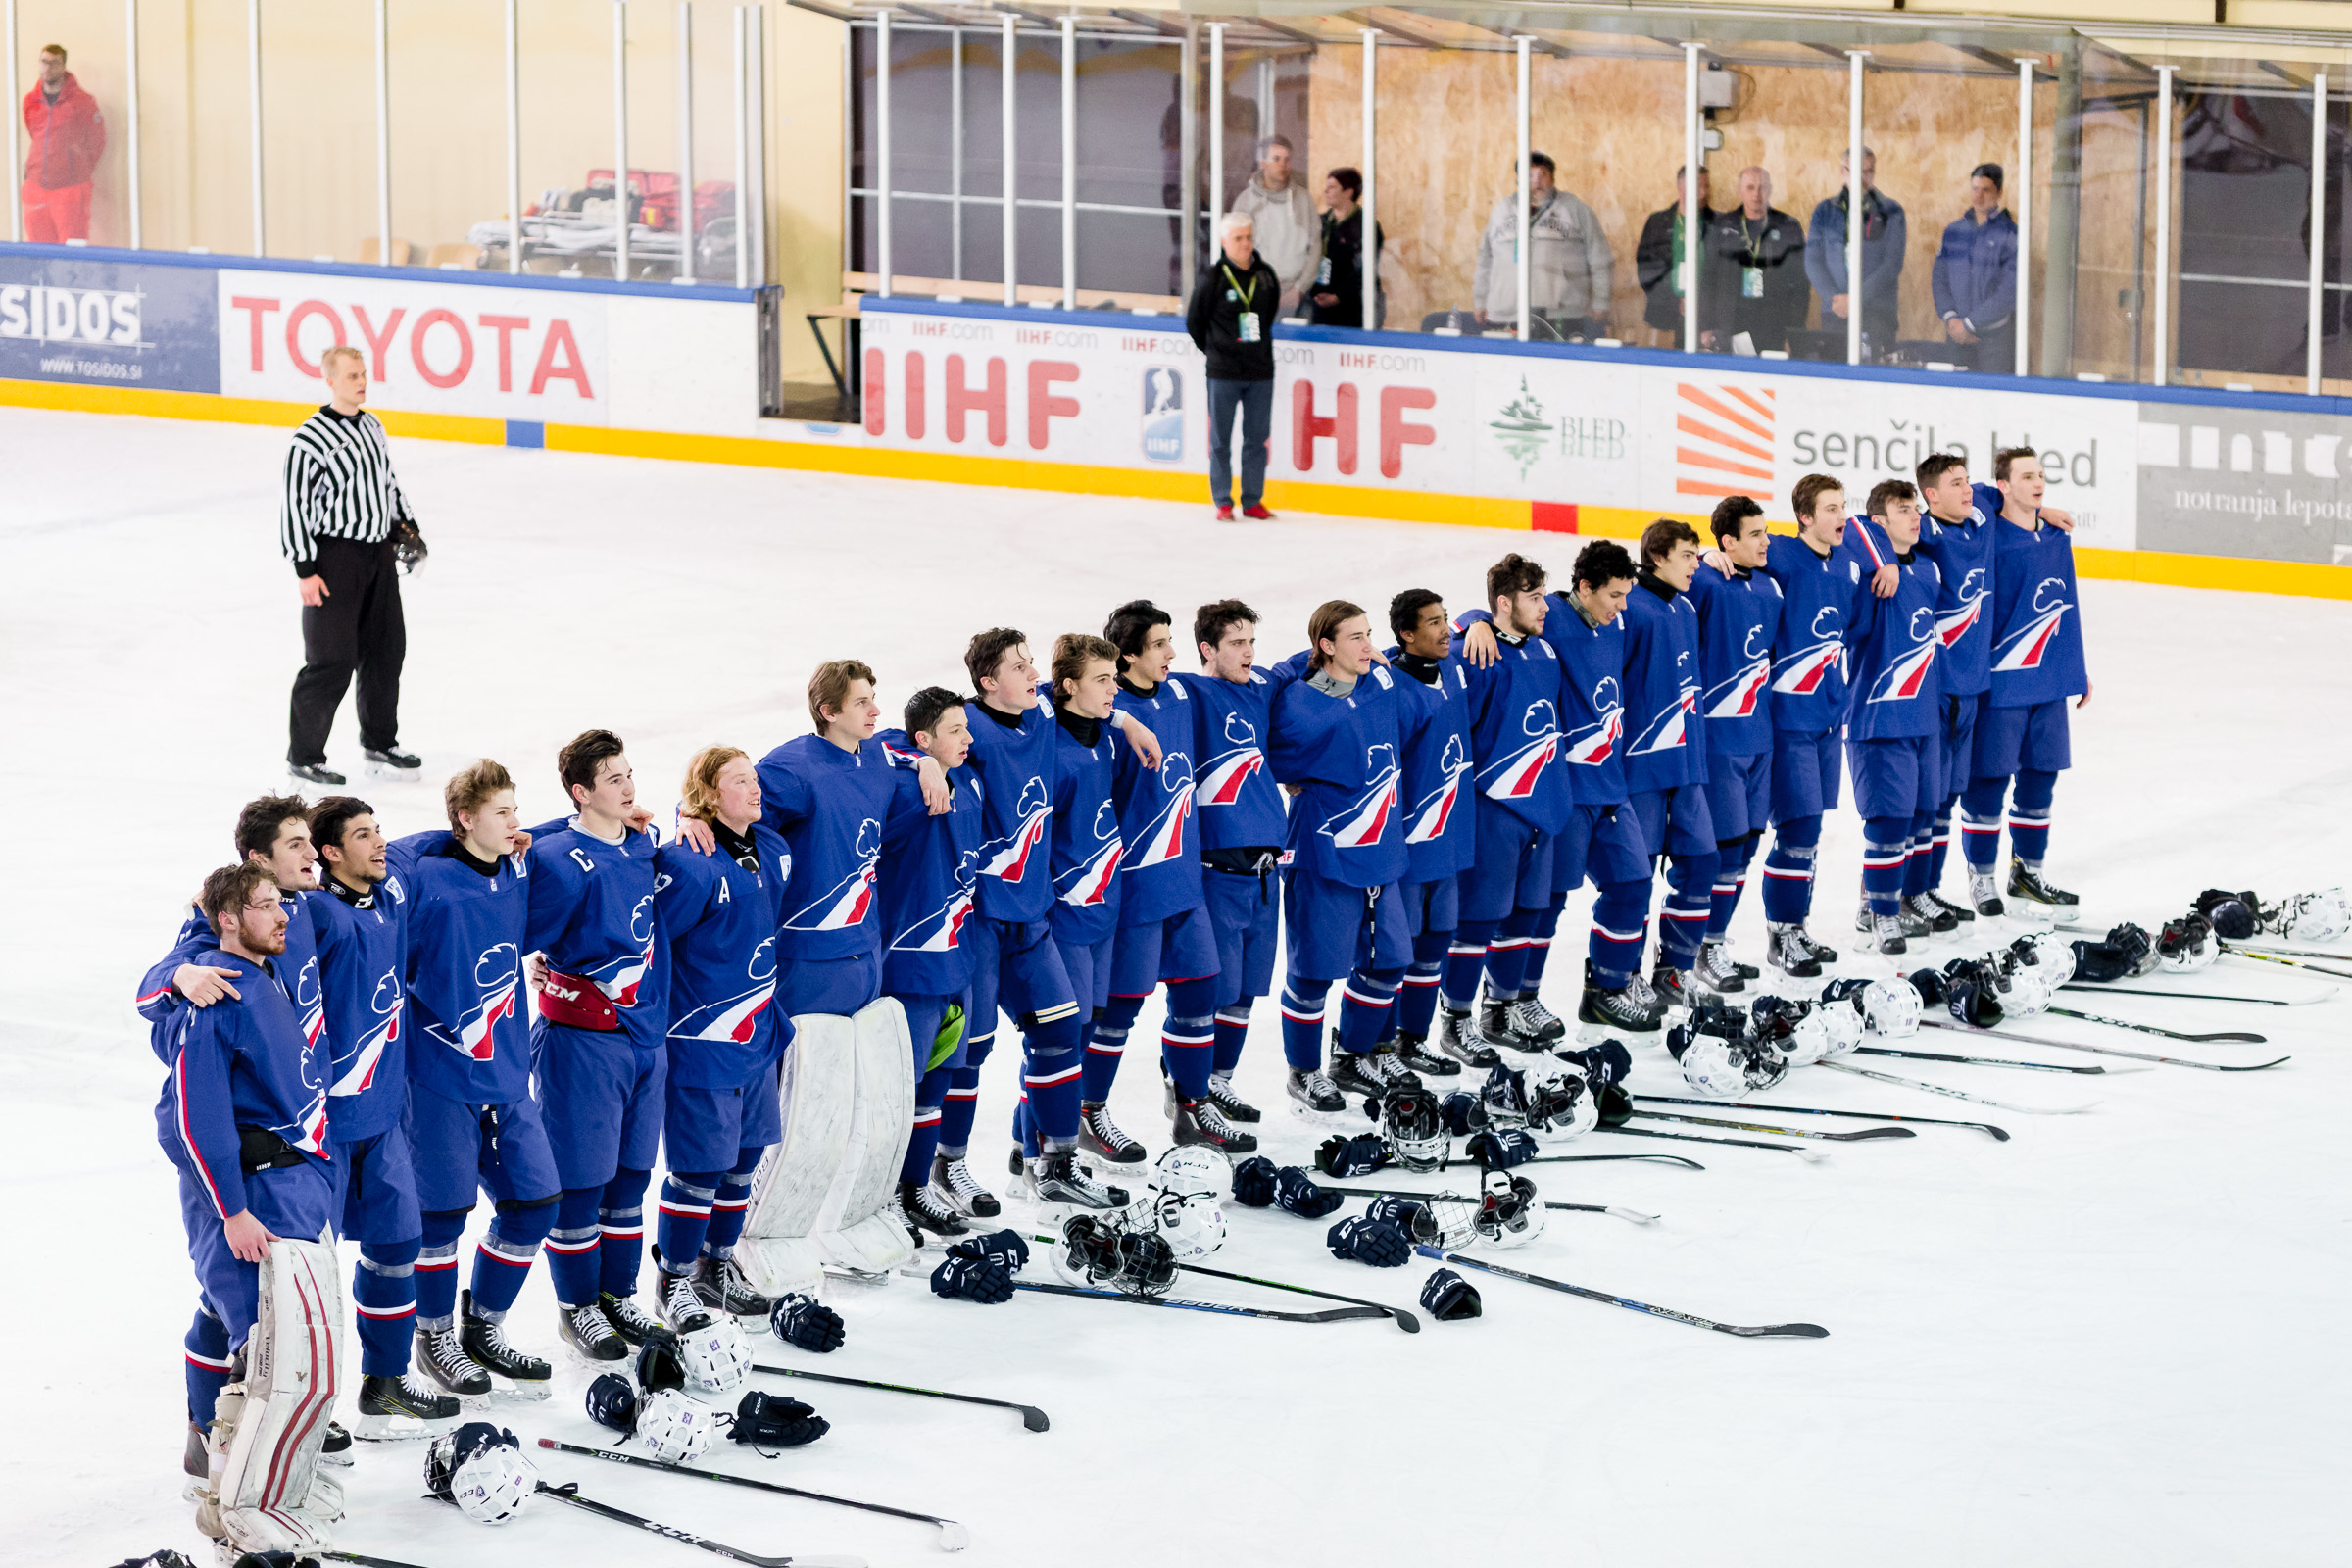 Historic Gold For France Wm18ia International Ice